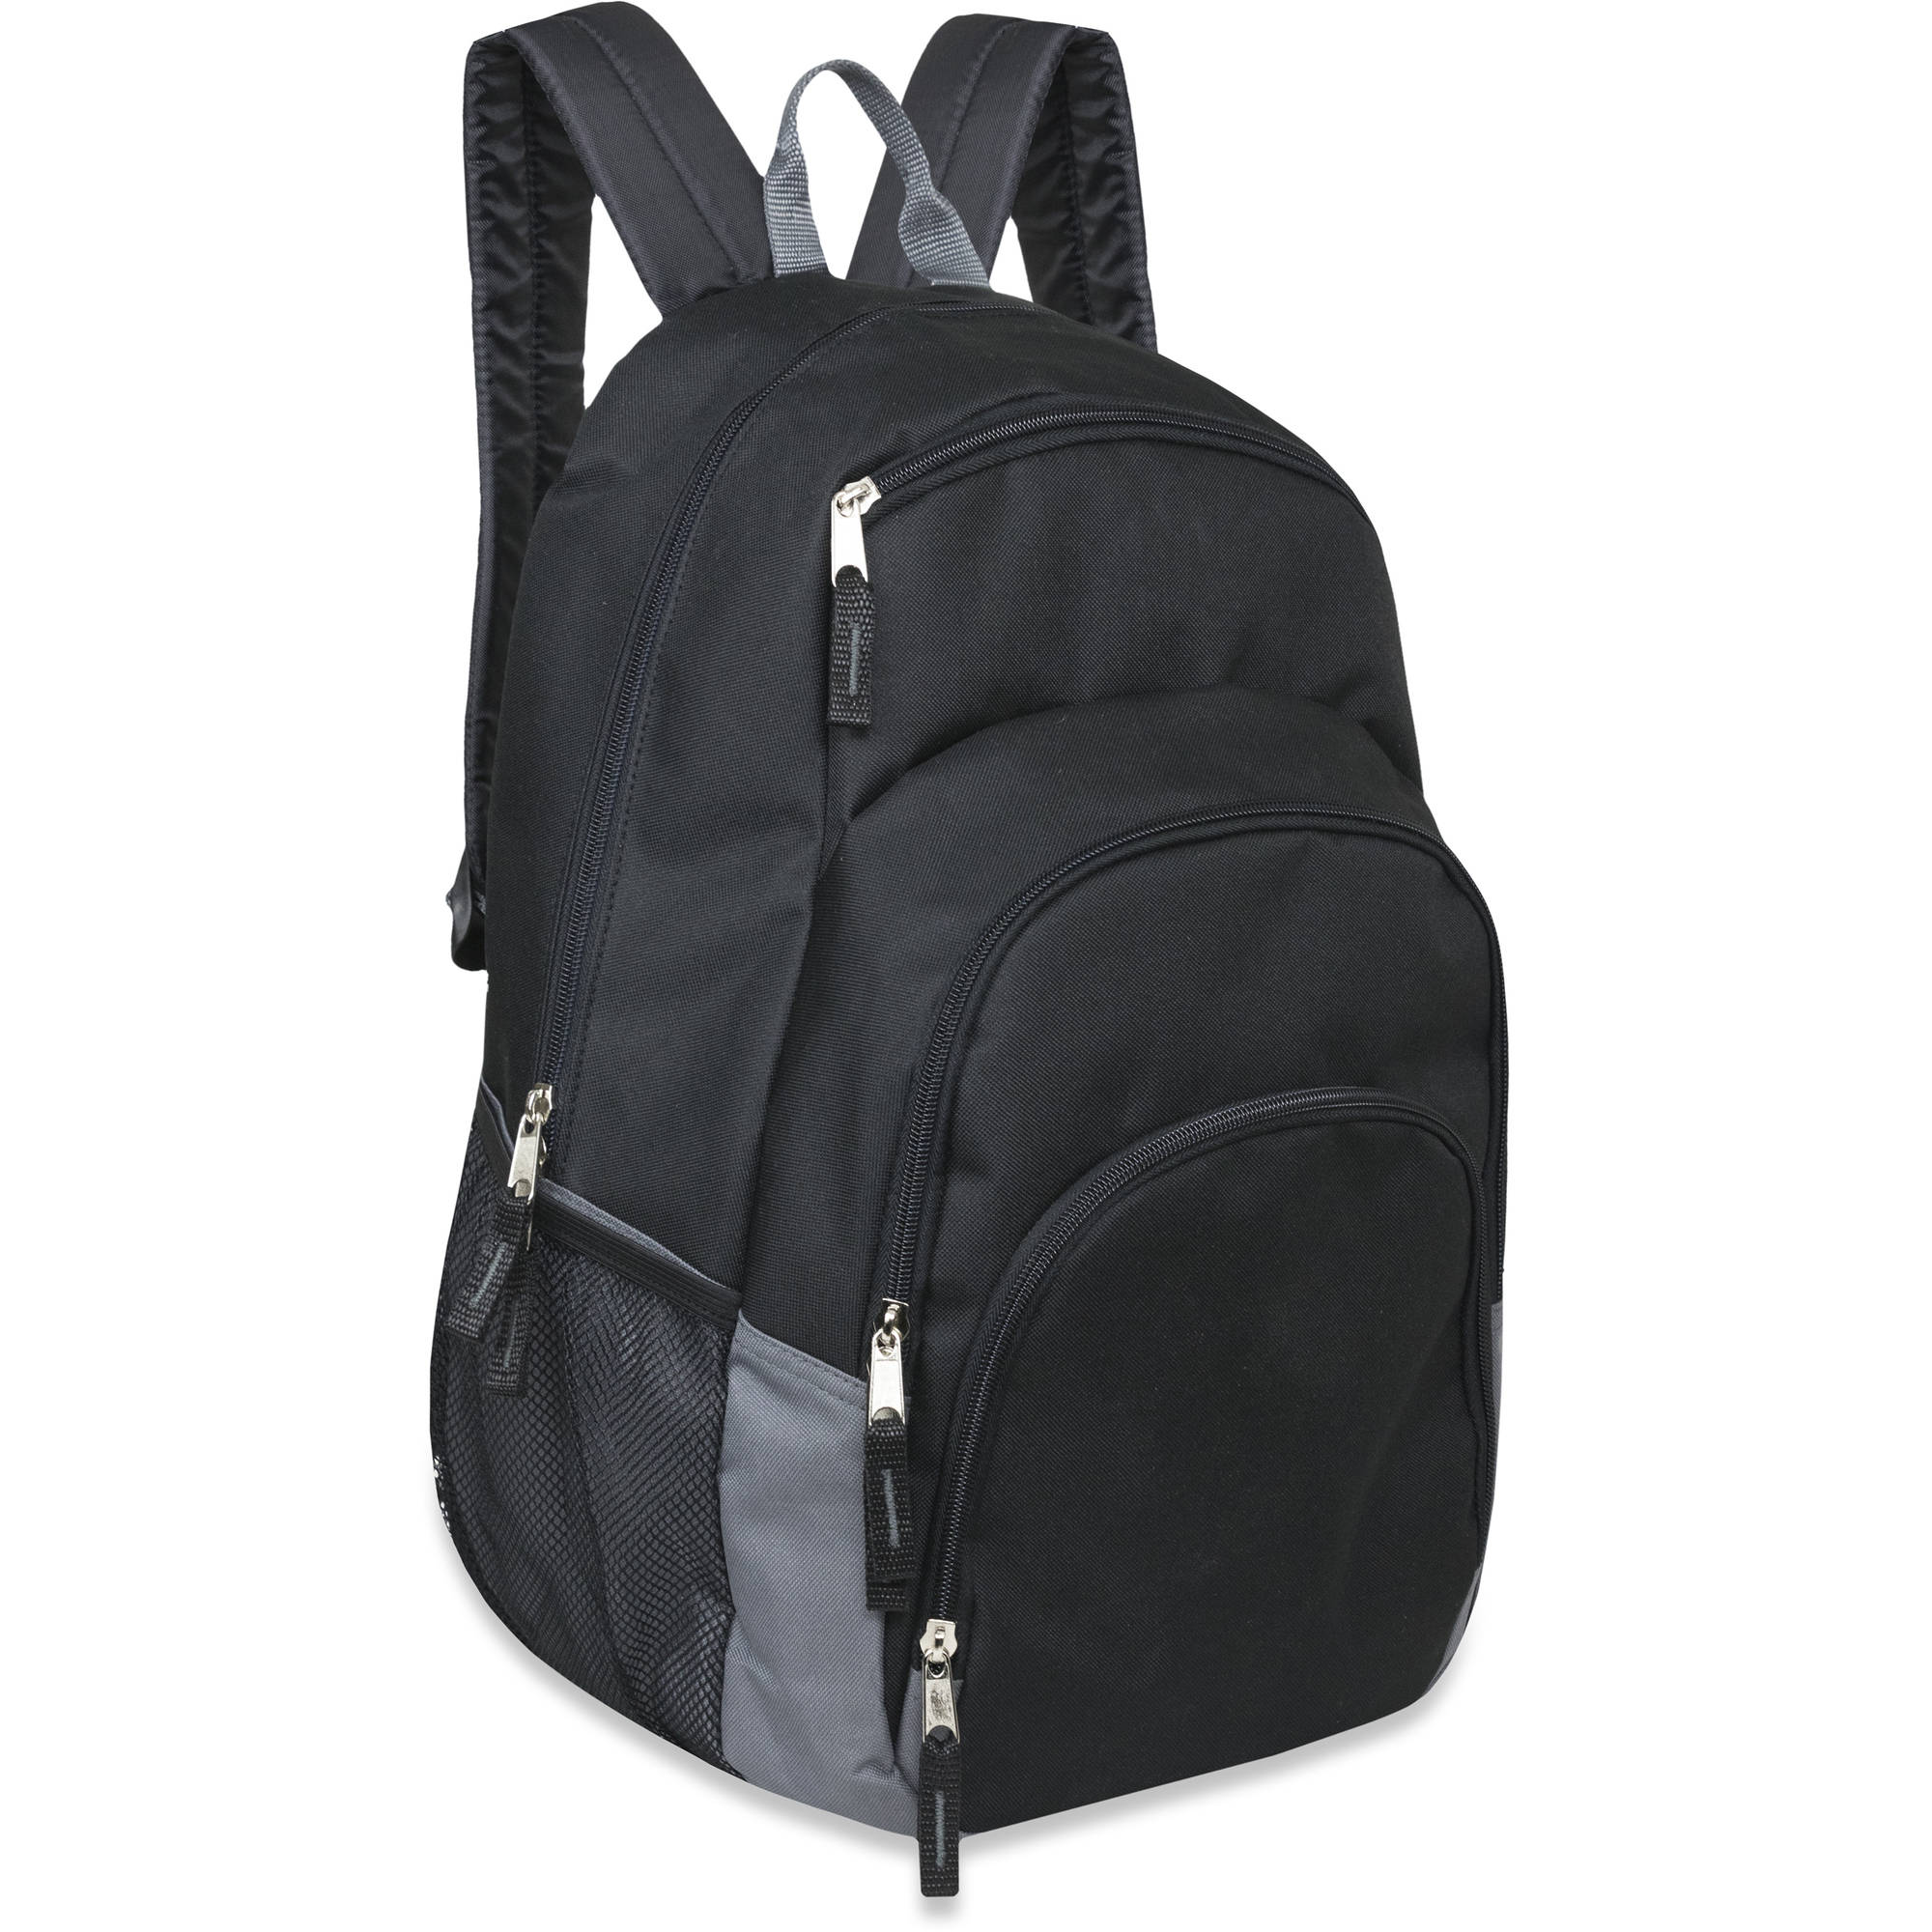 18.5 Inch Quad Pocket Backpack with Three Front Zippered Pockets